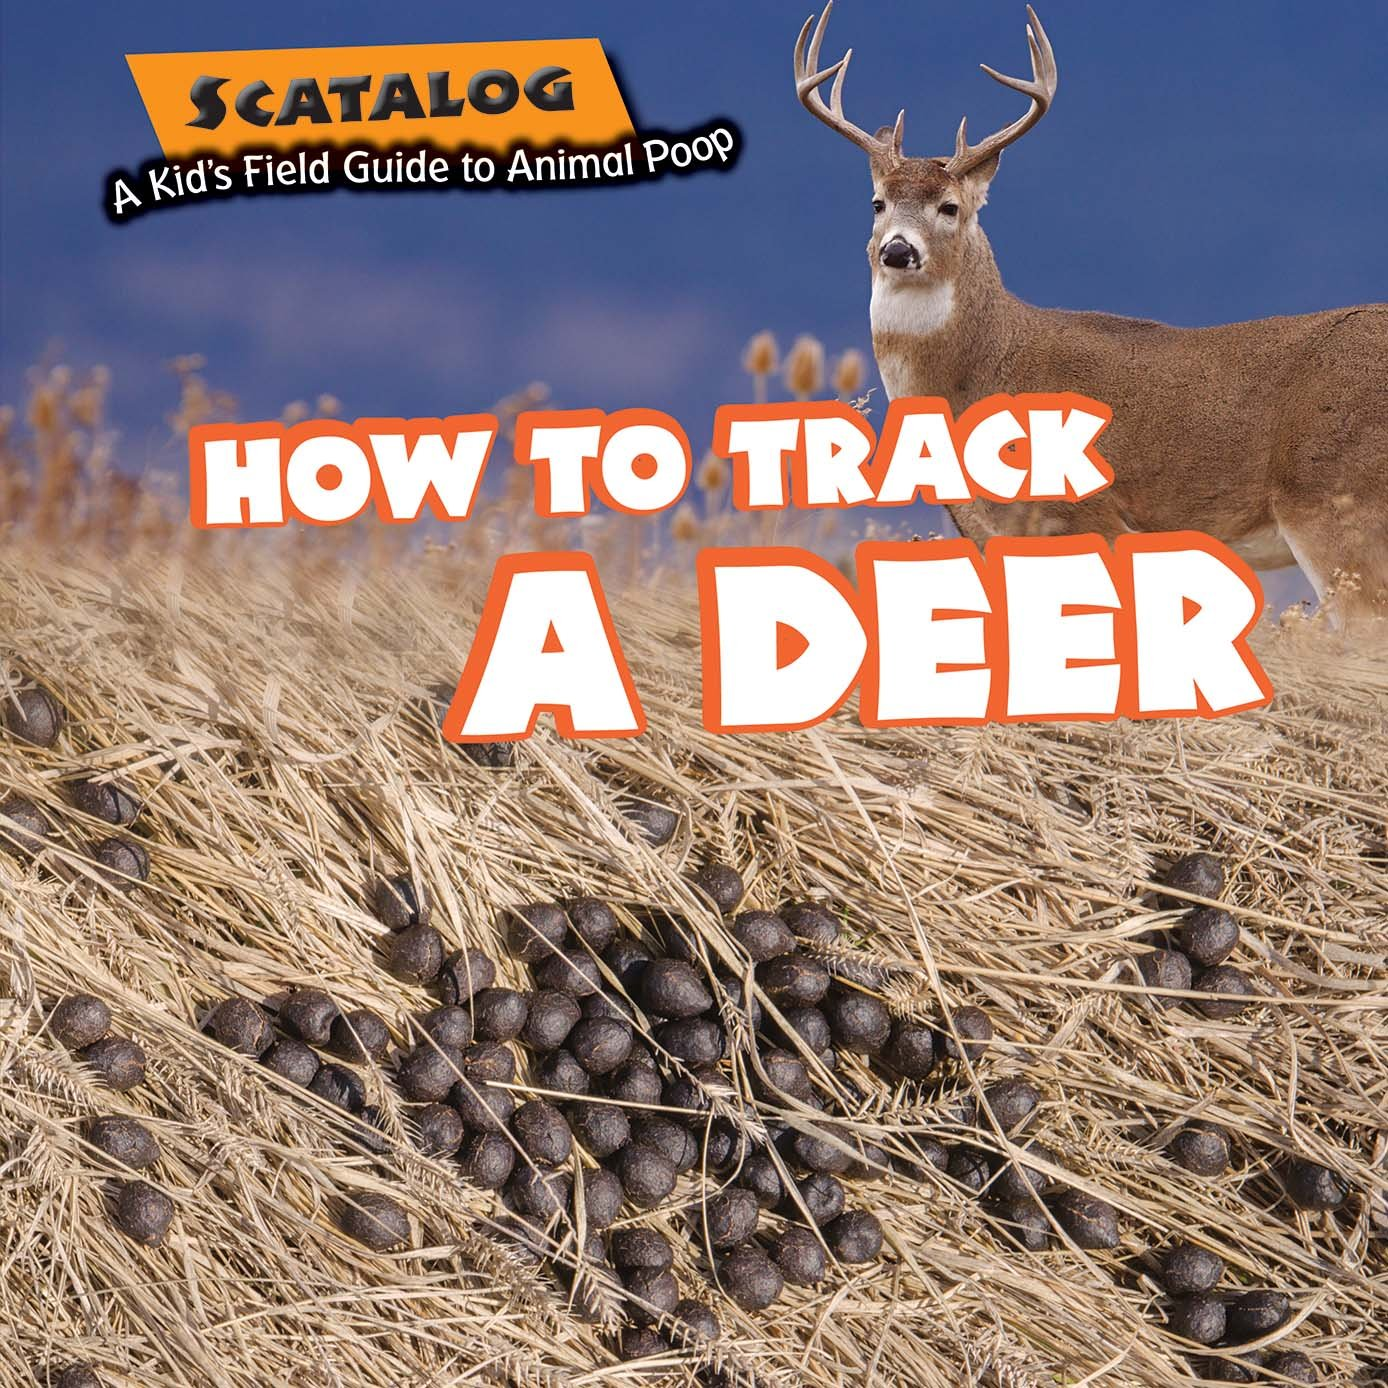 Download How to Track a Deer (Scatalog: A Kid's Field Guide to Animal Poop) ebook